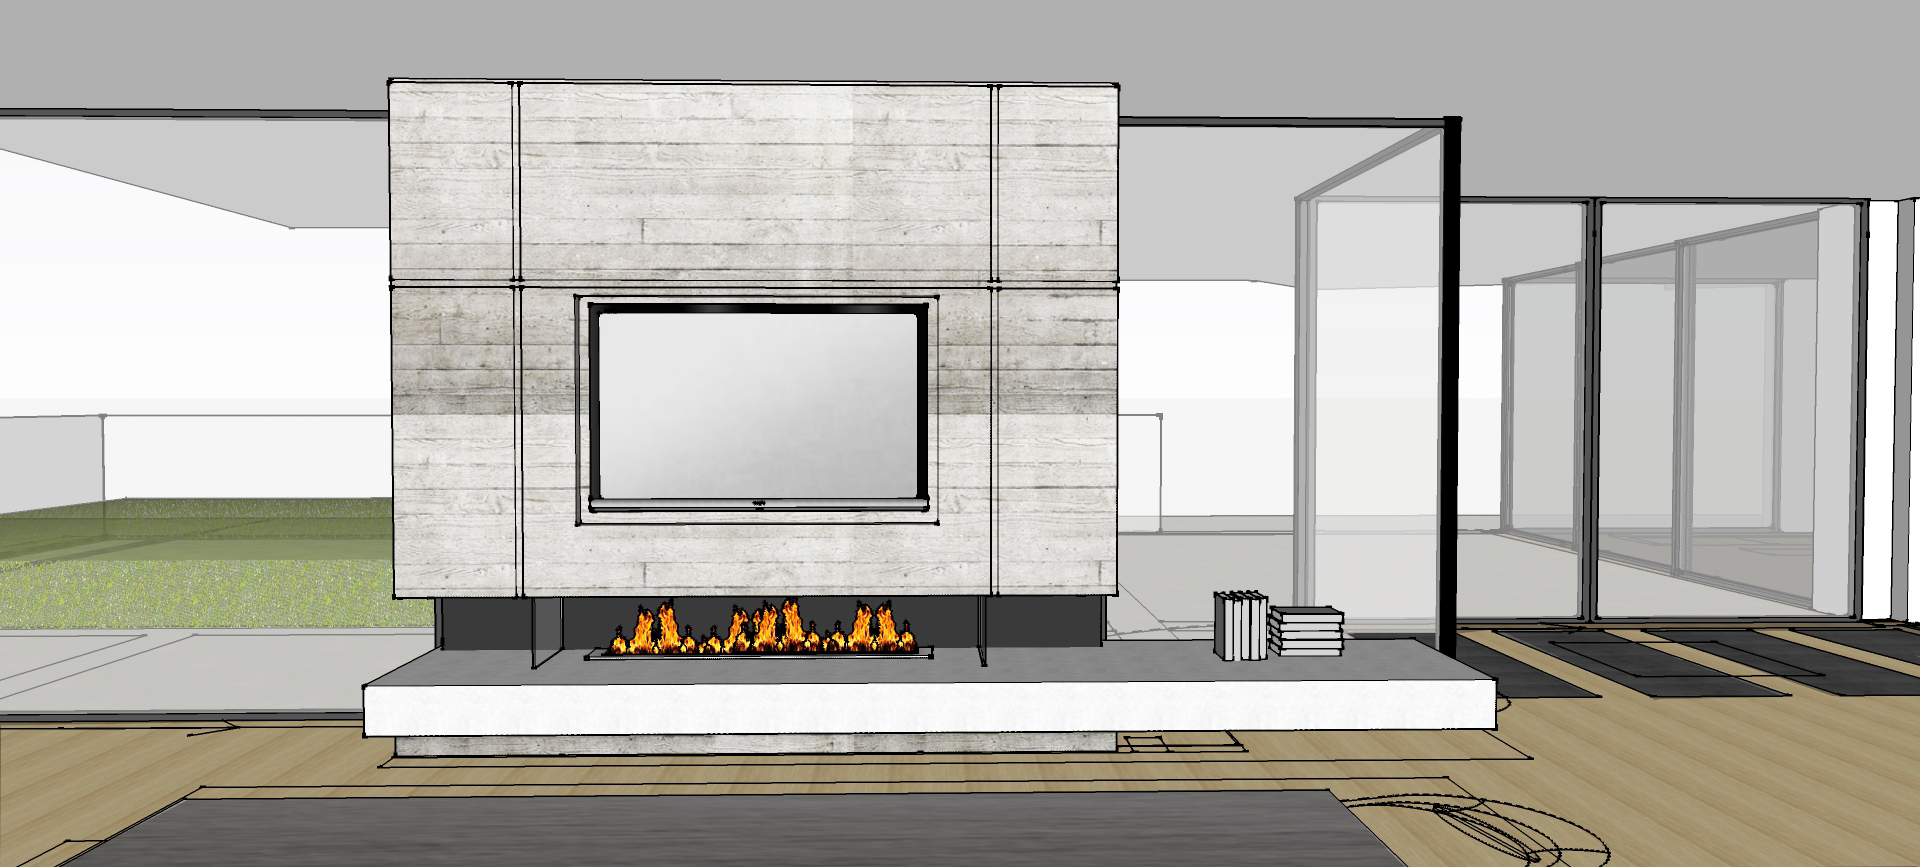 16_04_27_Tivoli L1_Living room fireplace_01.jpg